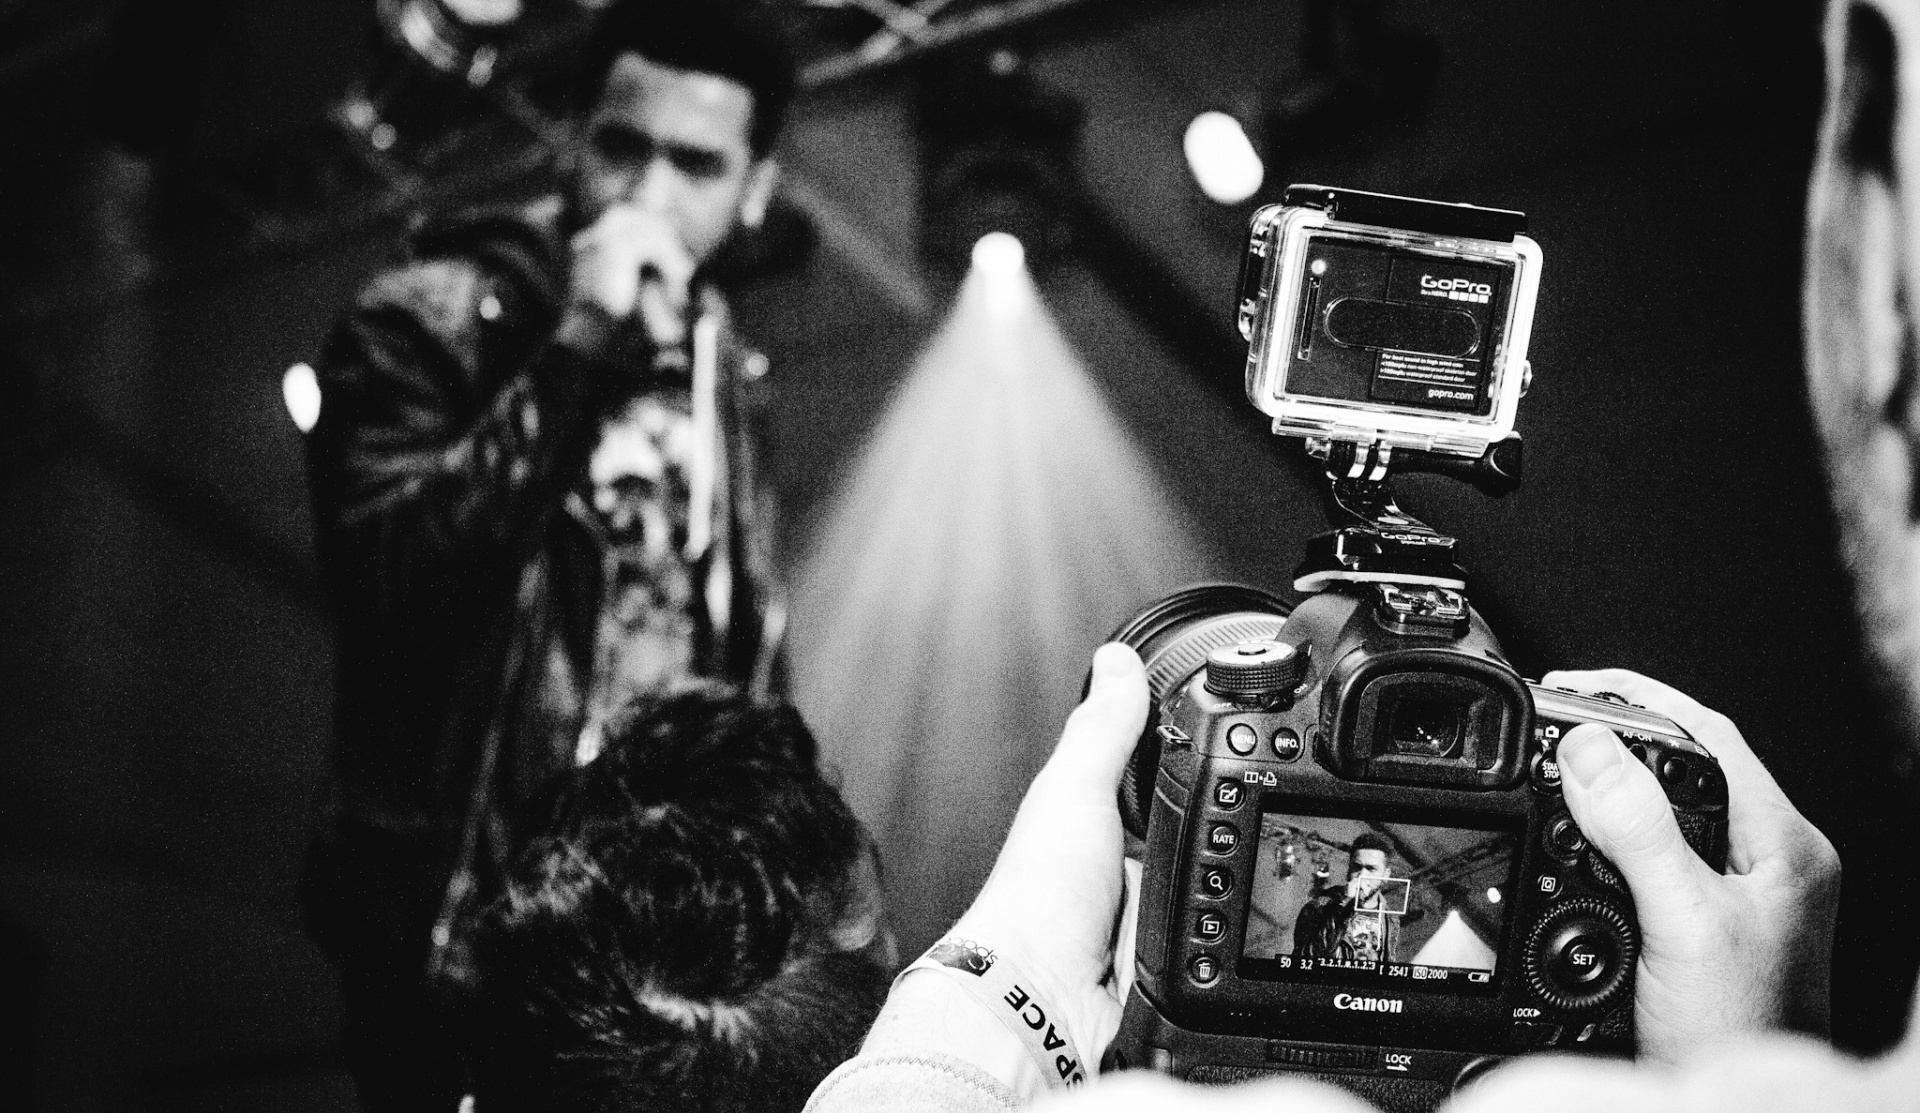 Black and white photograph of the Shoreditch Fashion Show- pictured is a camera taking a picture of a singer. Graphic design by Barefaced Studios, design agency based in Islington, North London.